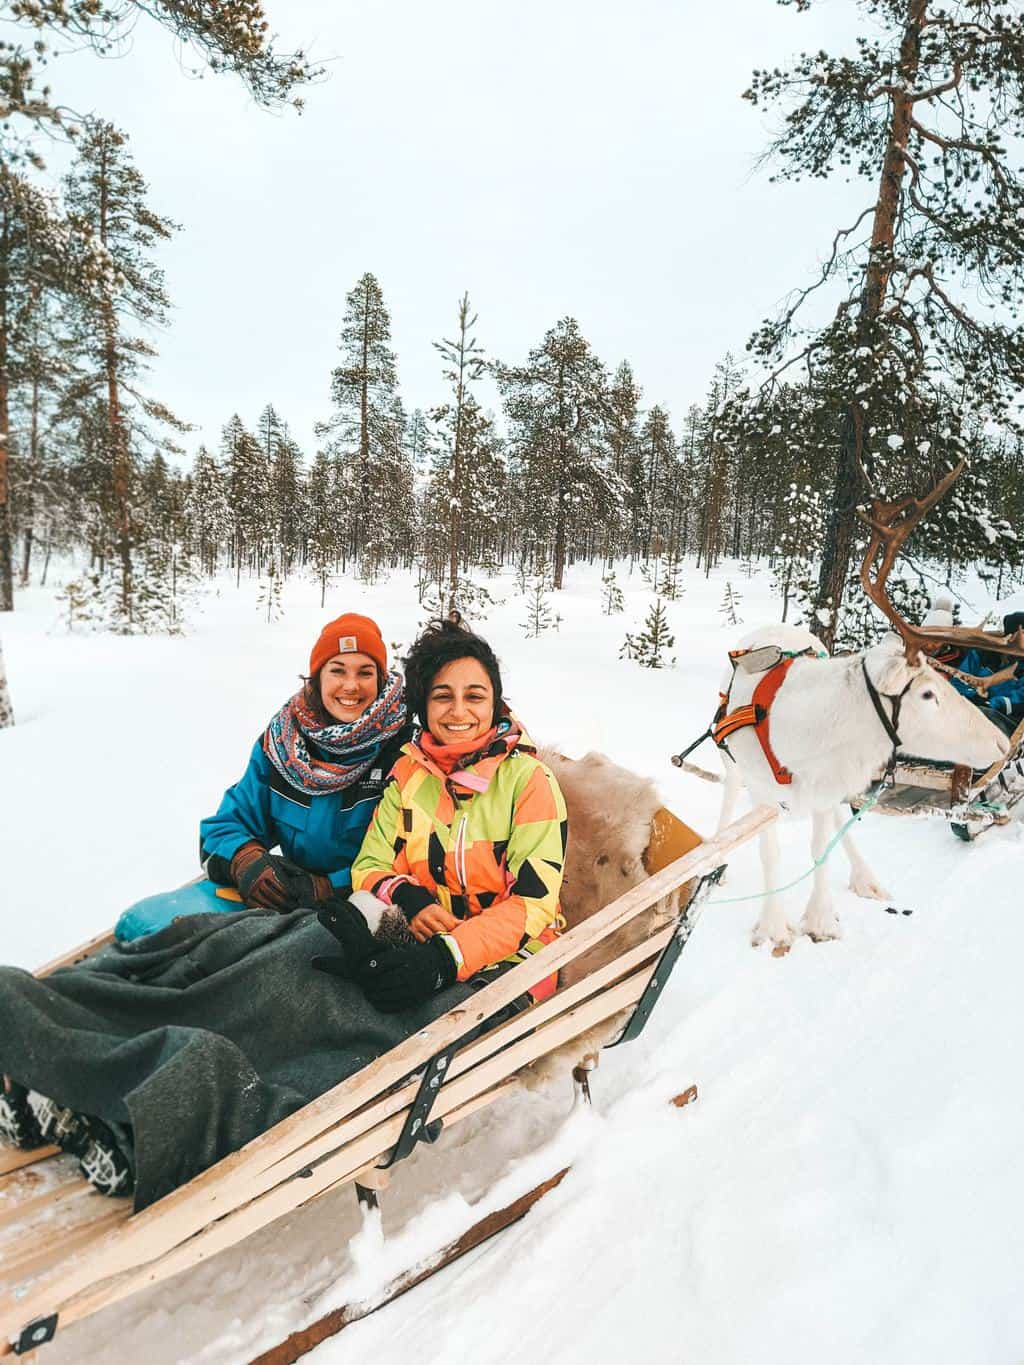 two women sitting in a ledge pulled by reindeer Finnish Lapland, Lapland destinations, Lapland Finland, Inghams